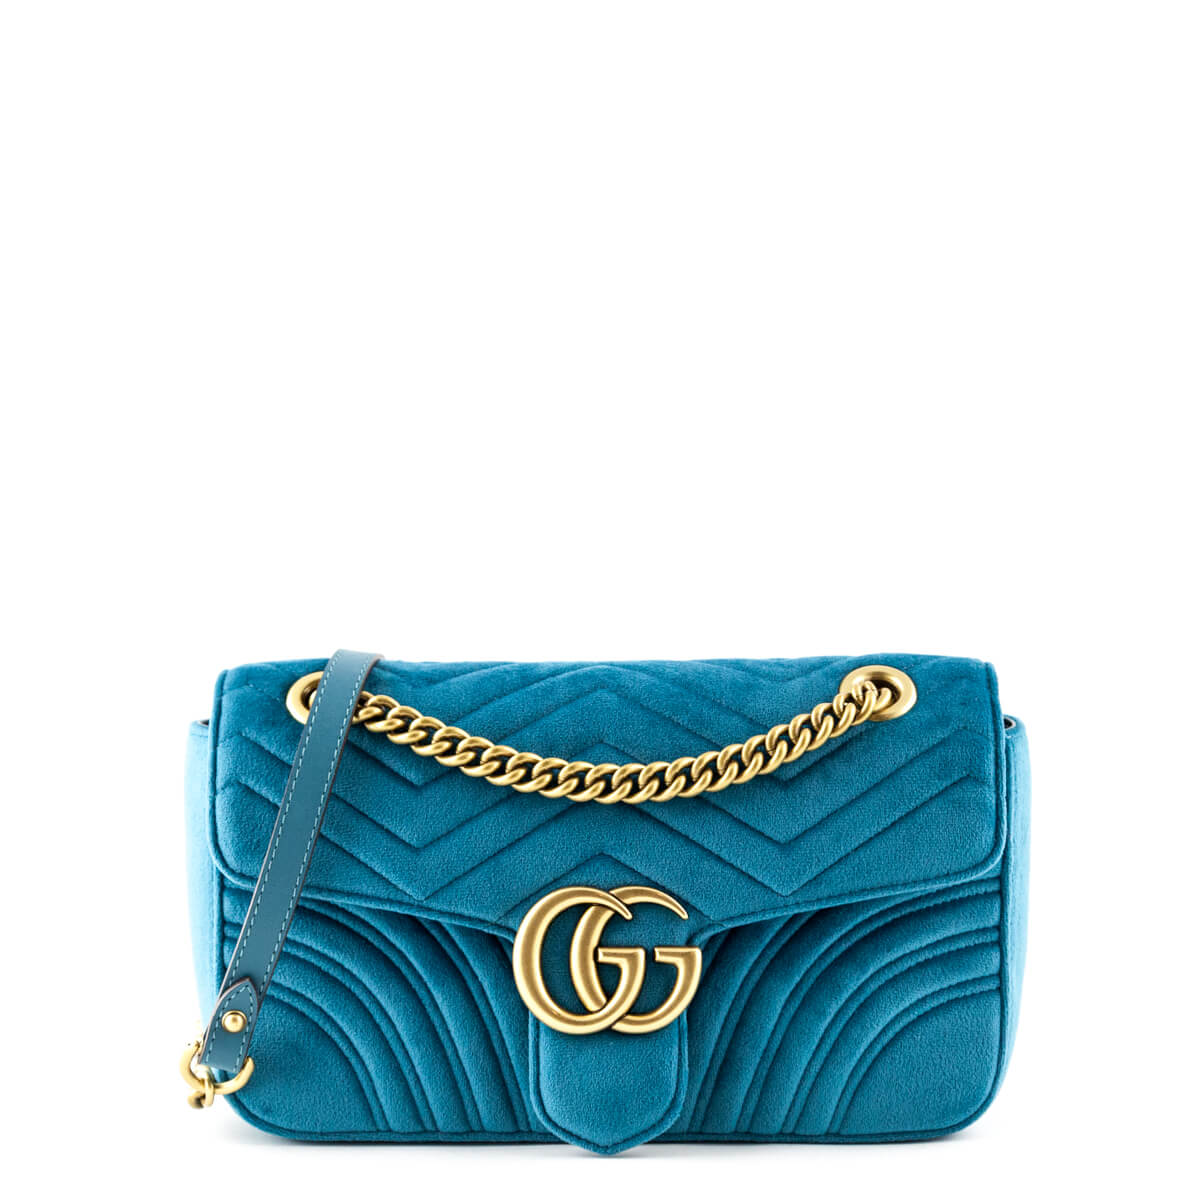 1543b593e51 Gucci Petrol Blue Velvet Small GG Marmont Shoulder Bag - LOVE that BAG -  Preowned Authentic ...